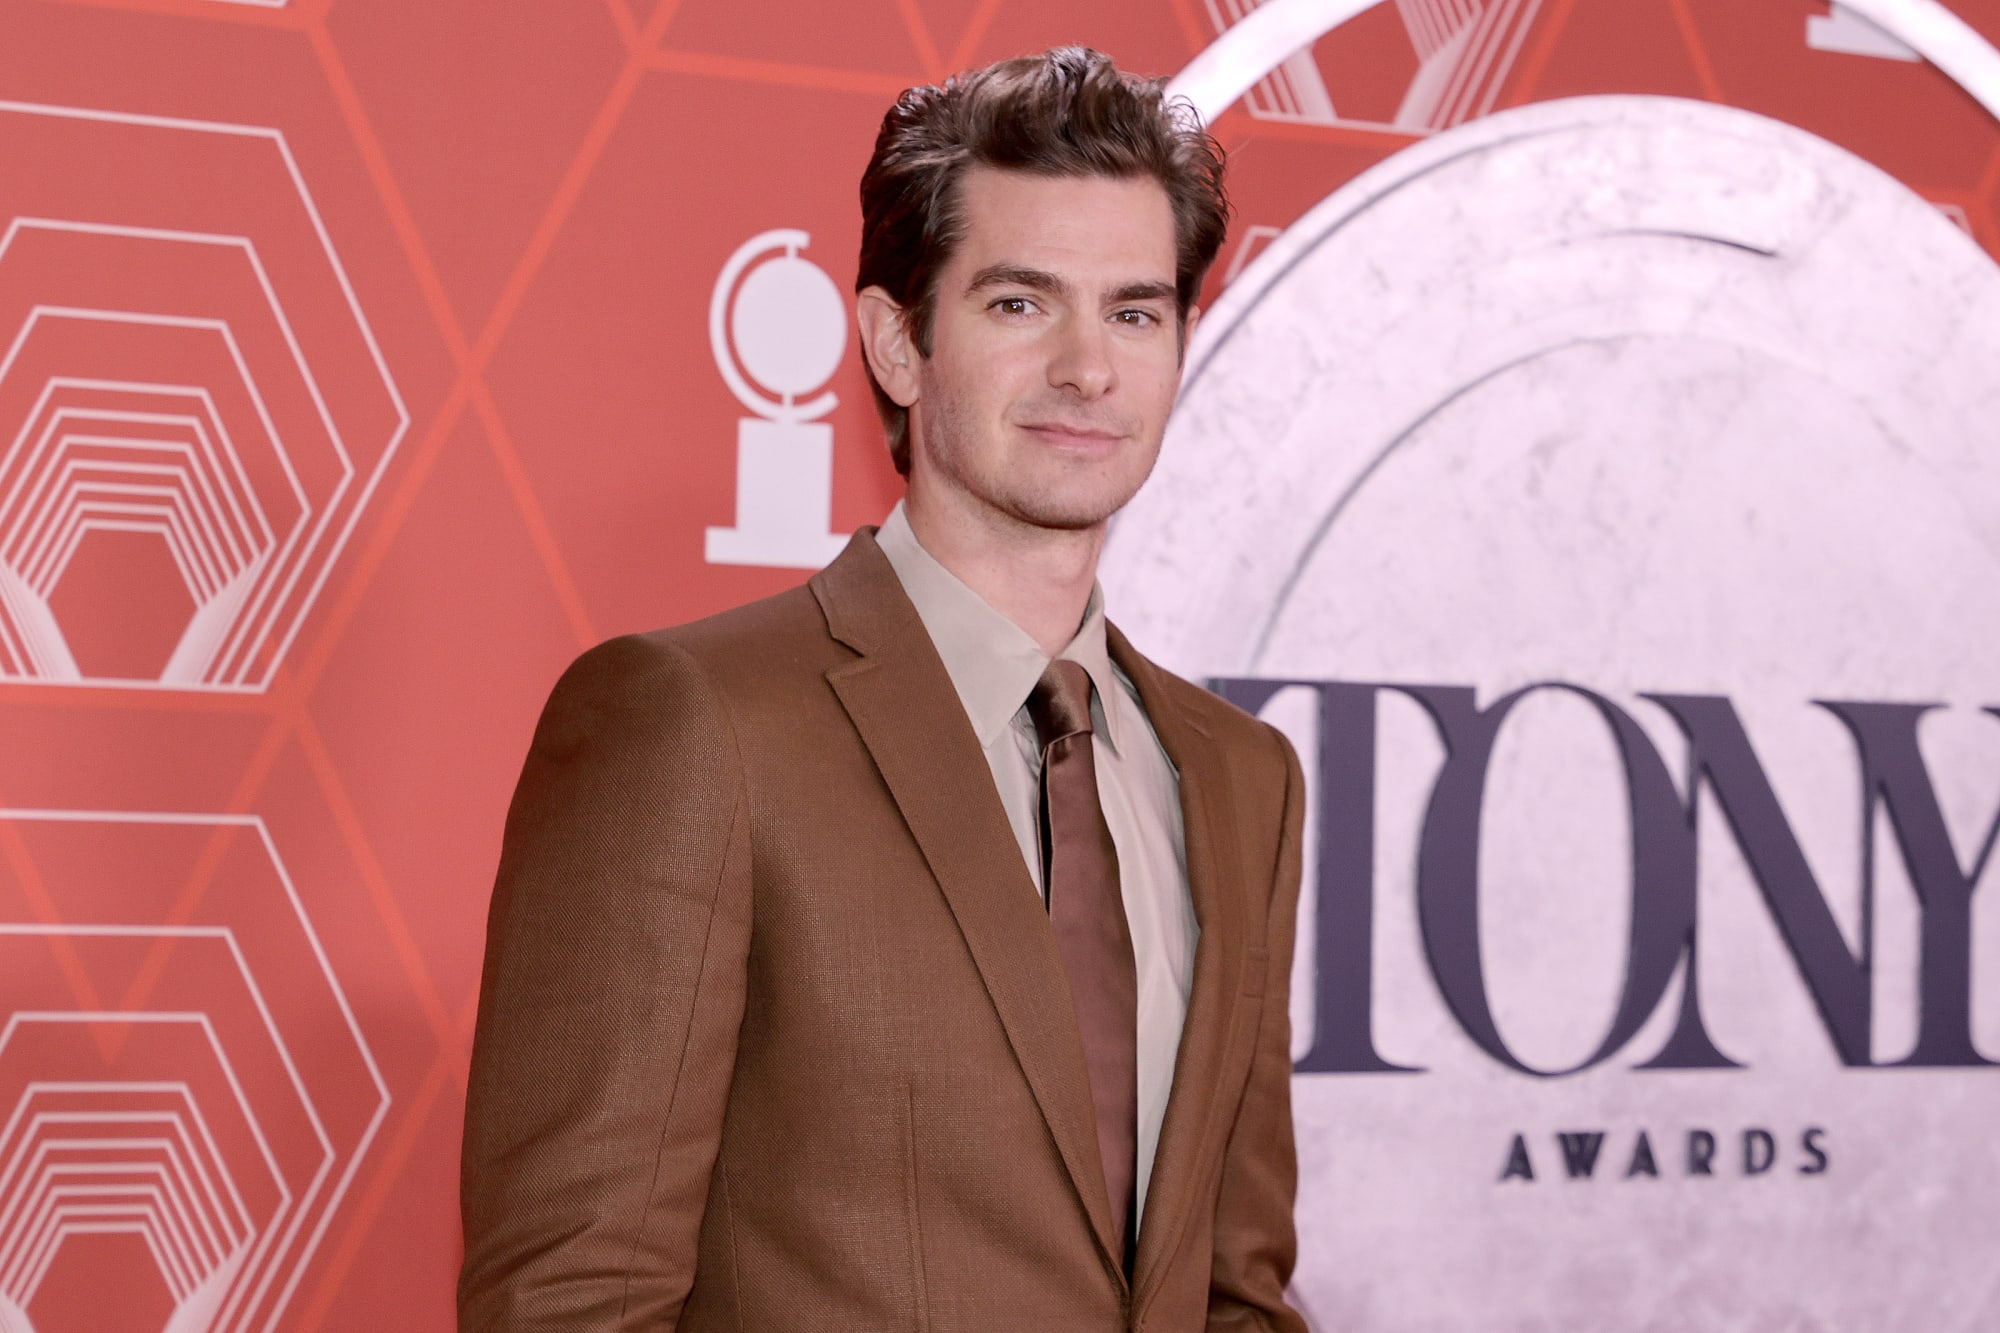 Andrew Garfield's Spider-Man returns in jaw-dropping new No Way Home image